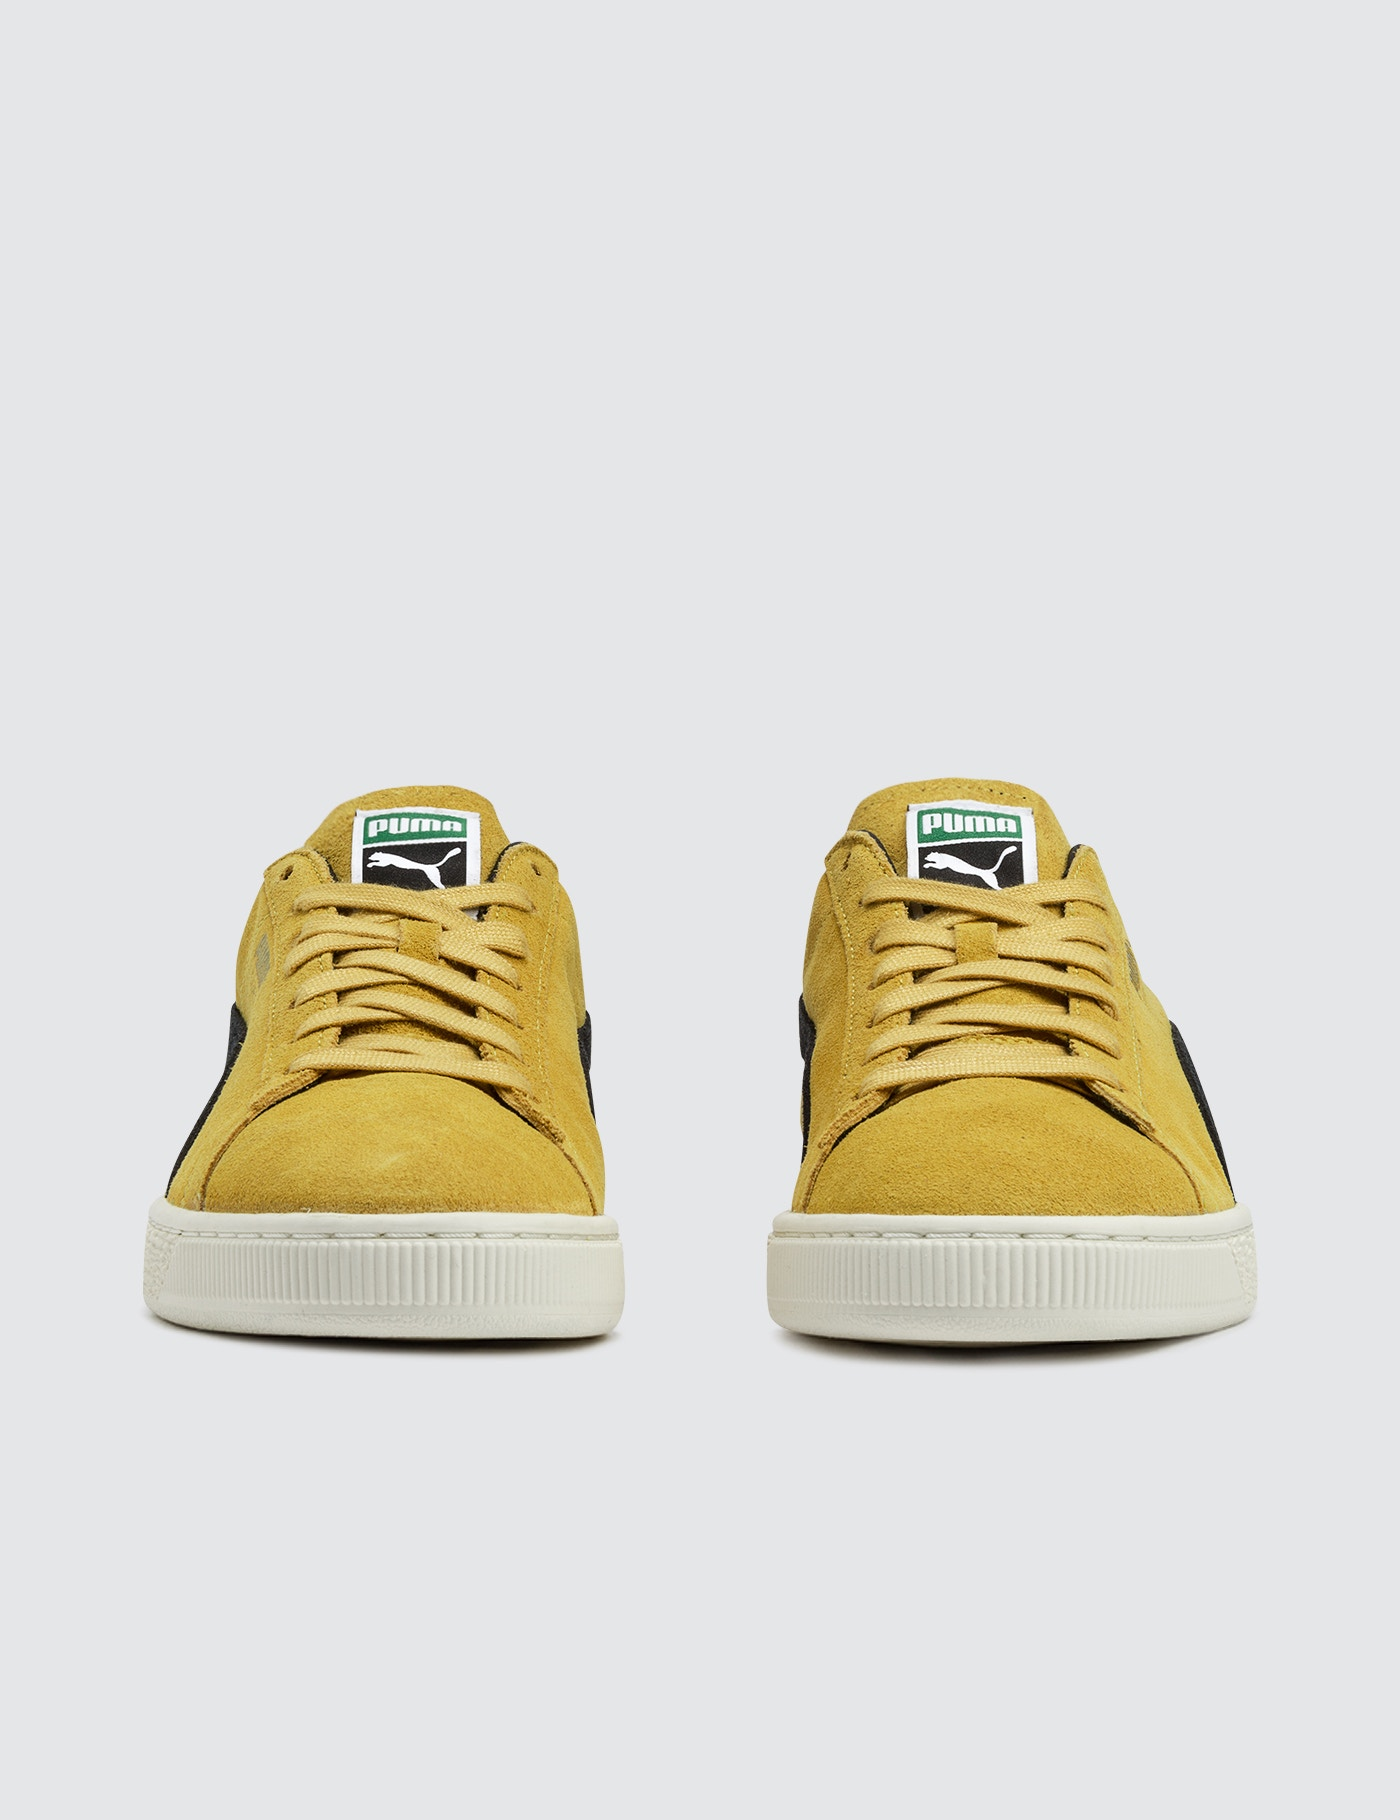 Buy Original Puma Suede Classic Archive at Indonesia  31269db8eed5